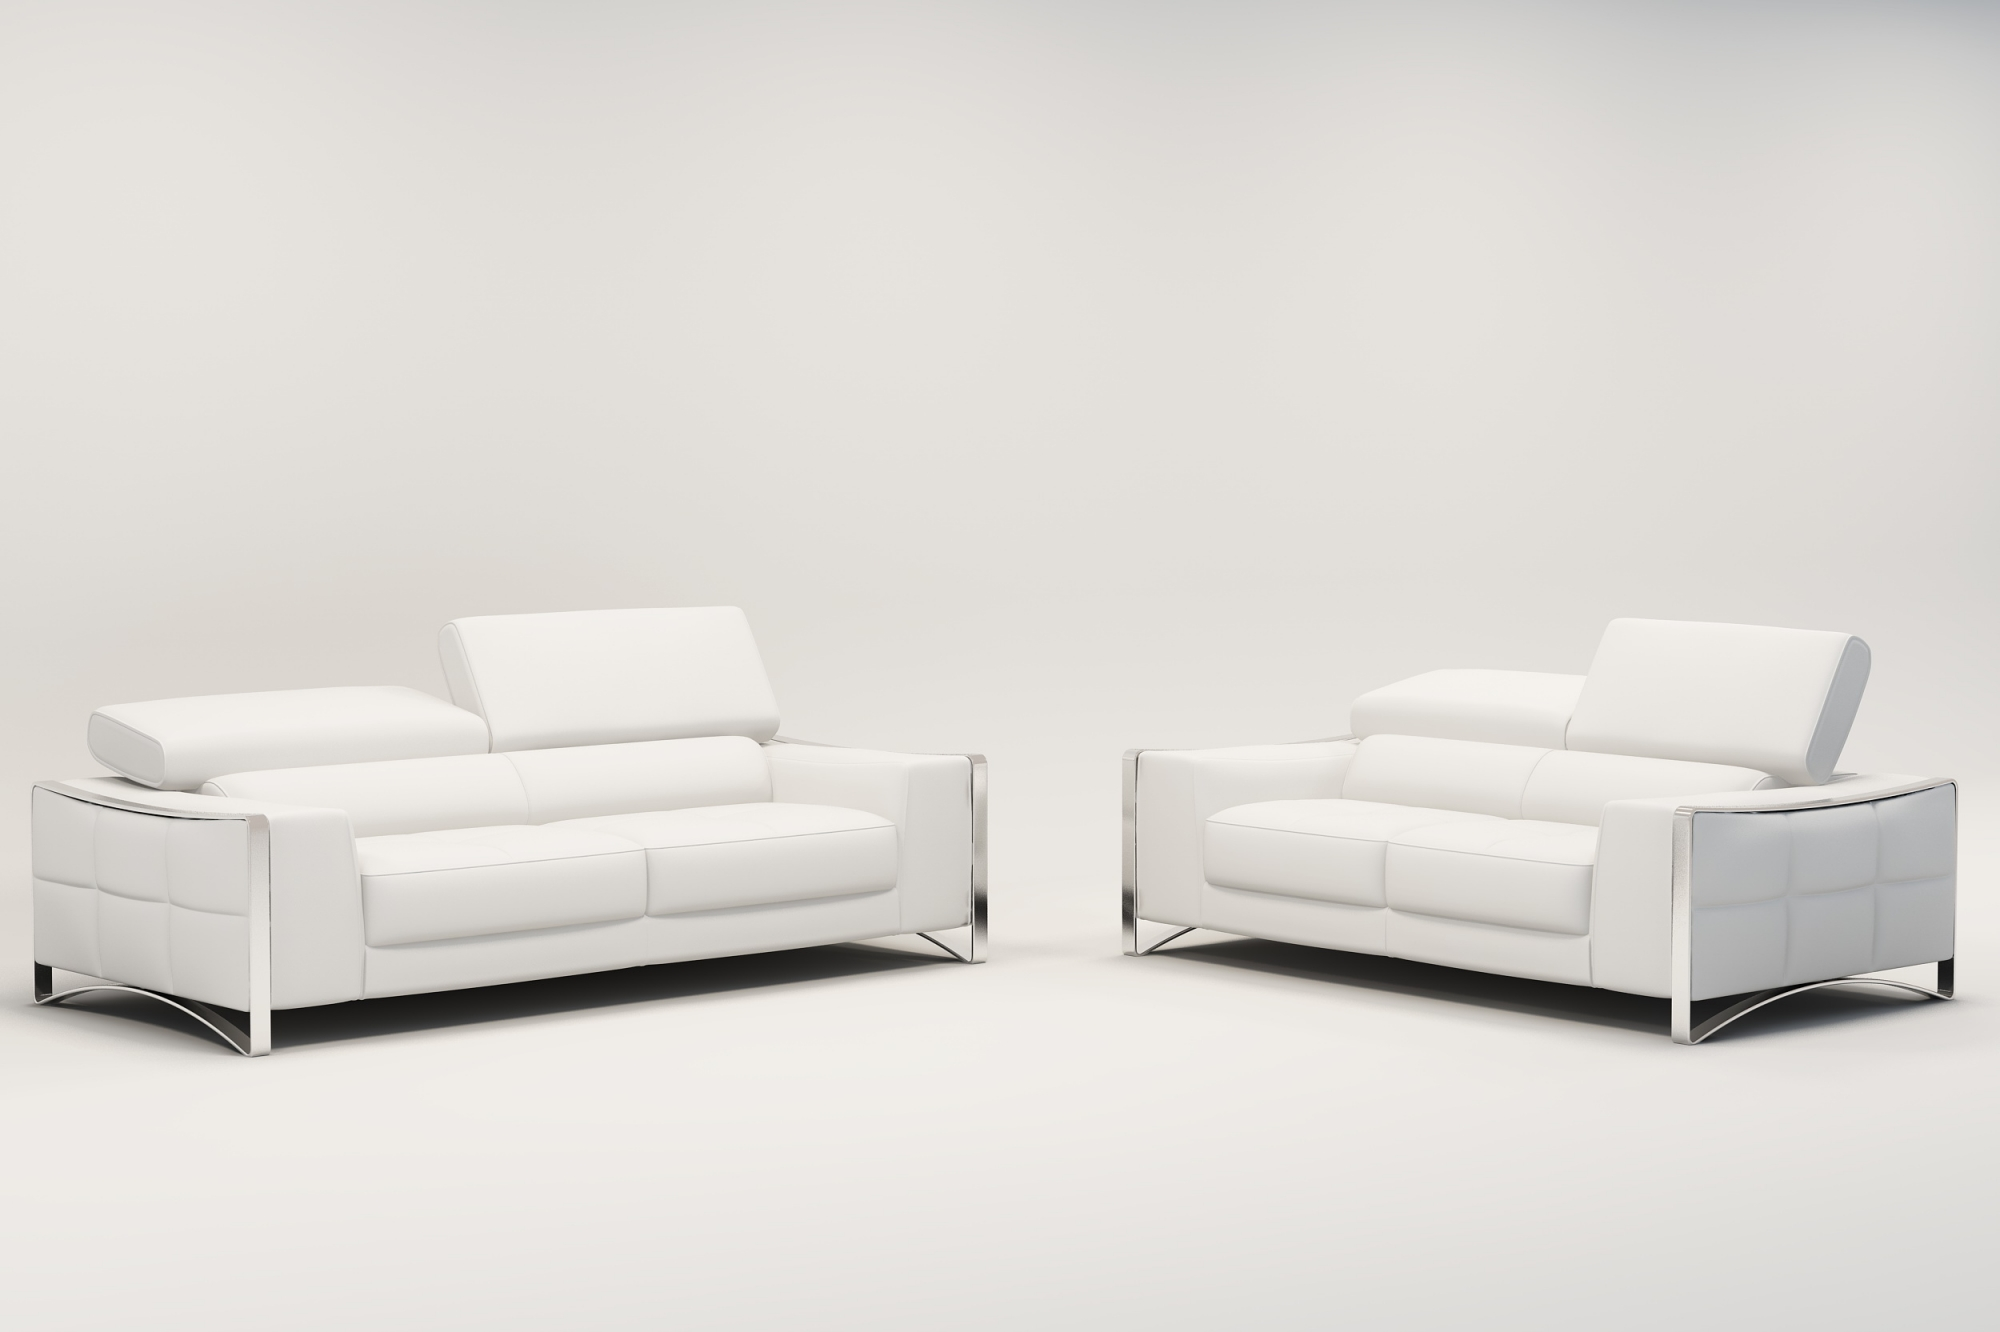 canap cuir blanc royal sofa id e de canap et meuble maison. Black Bedroom Furniture Sets. Home Design Ideas